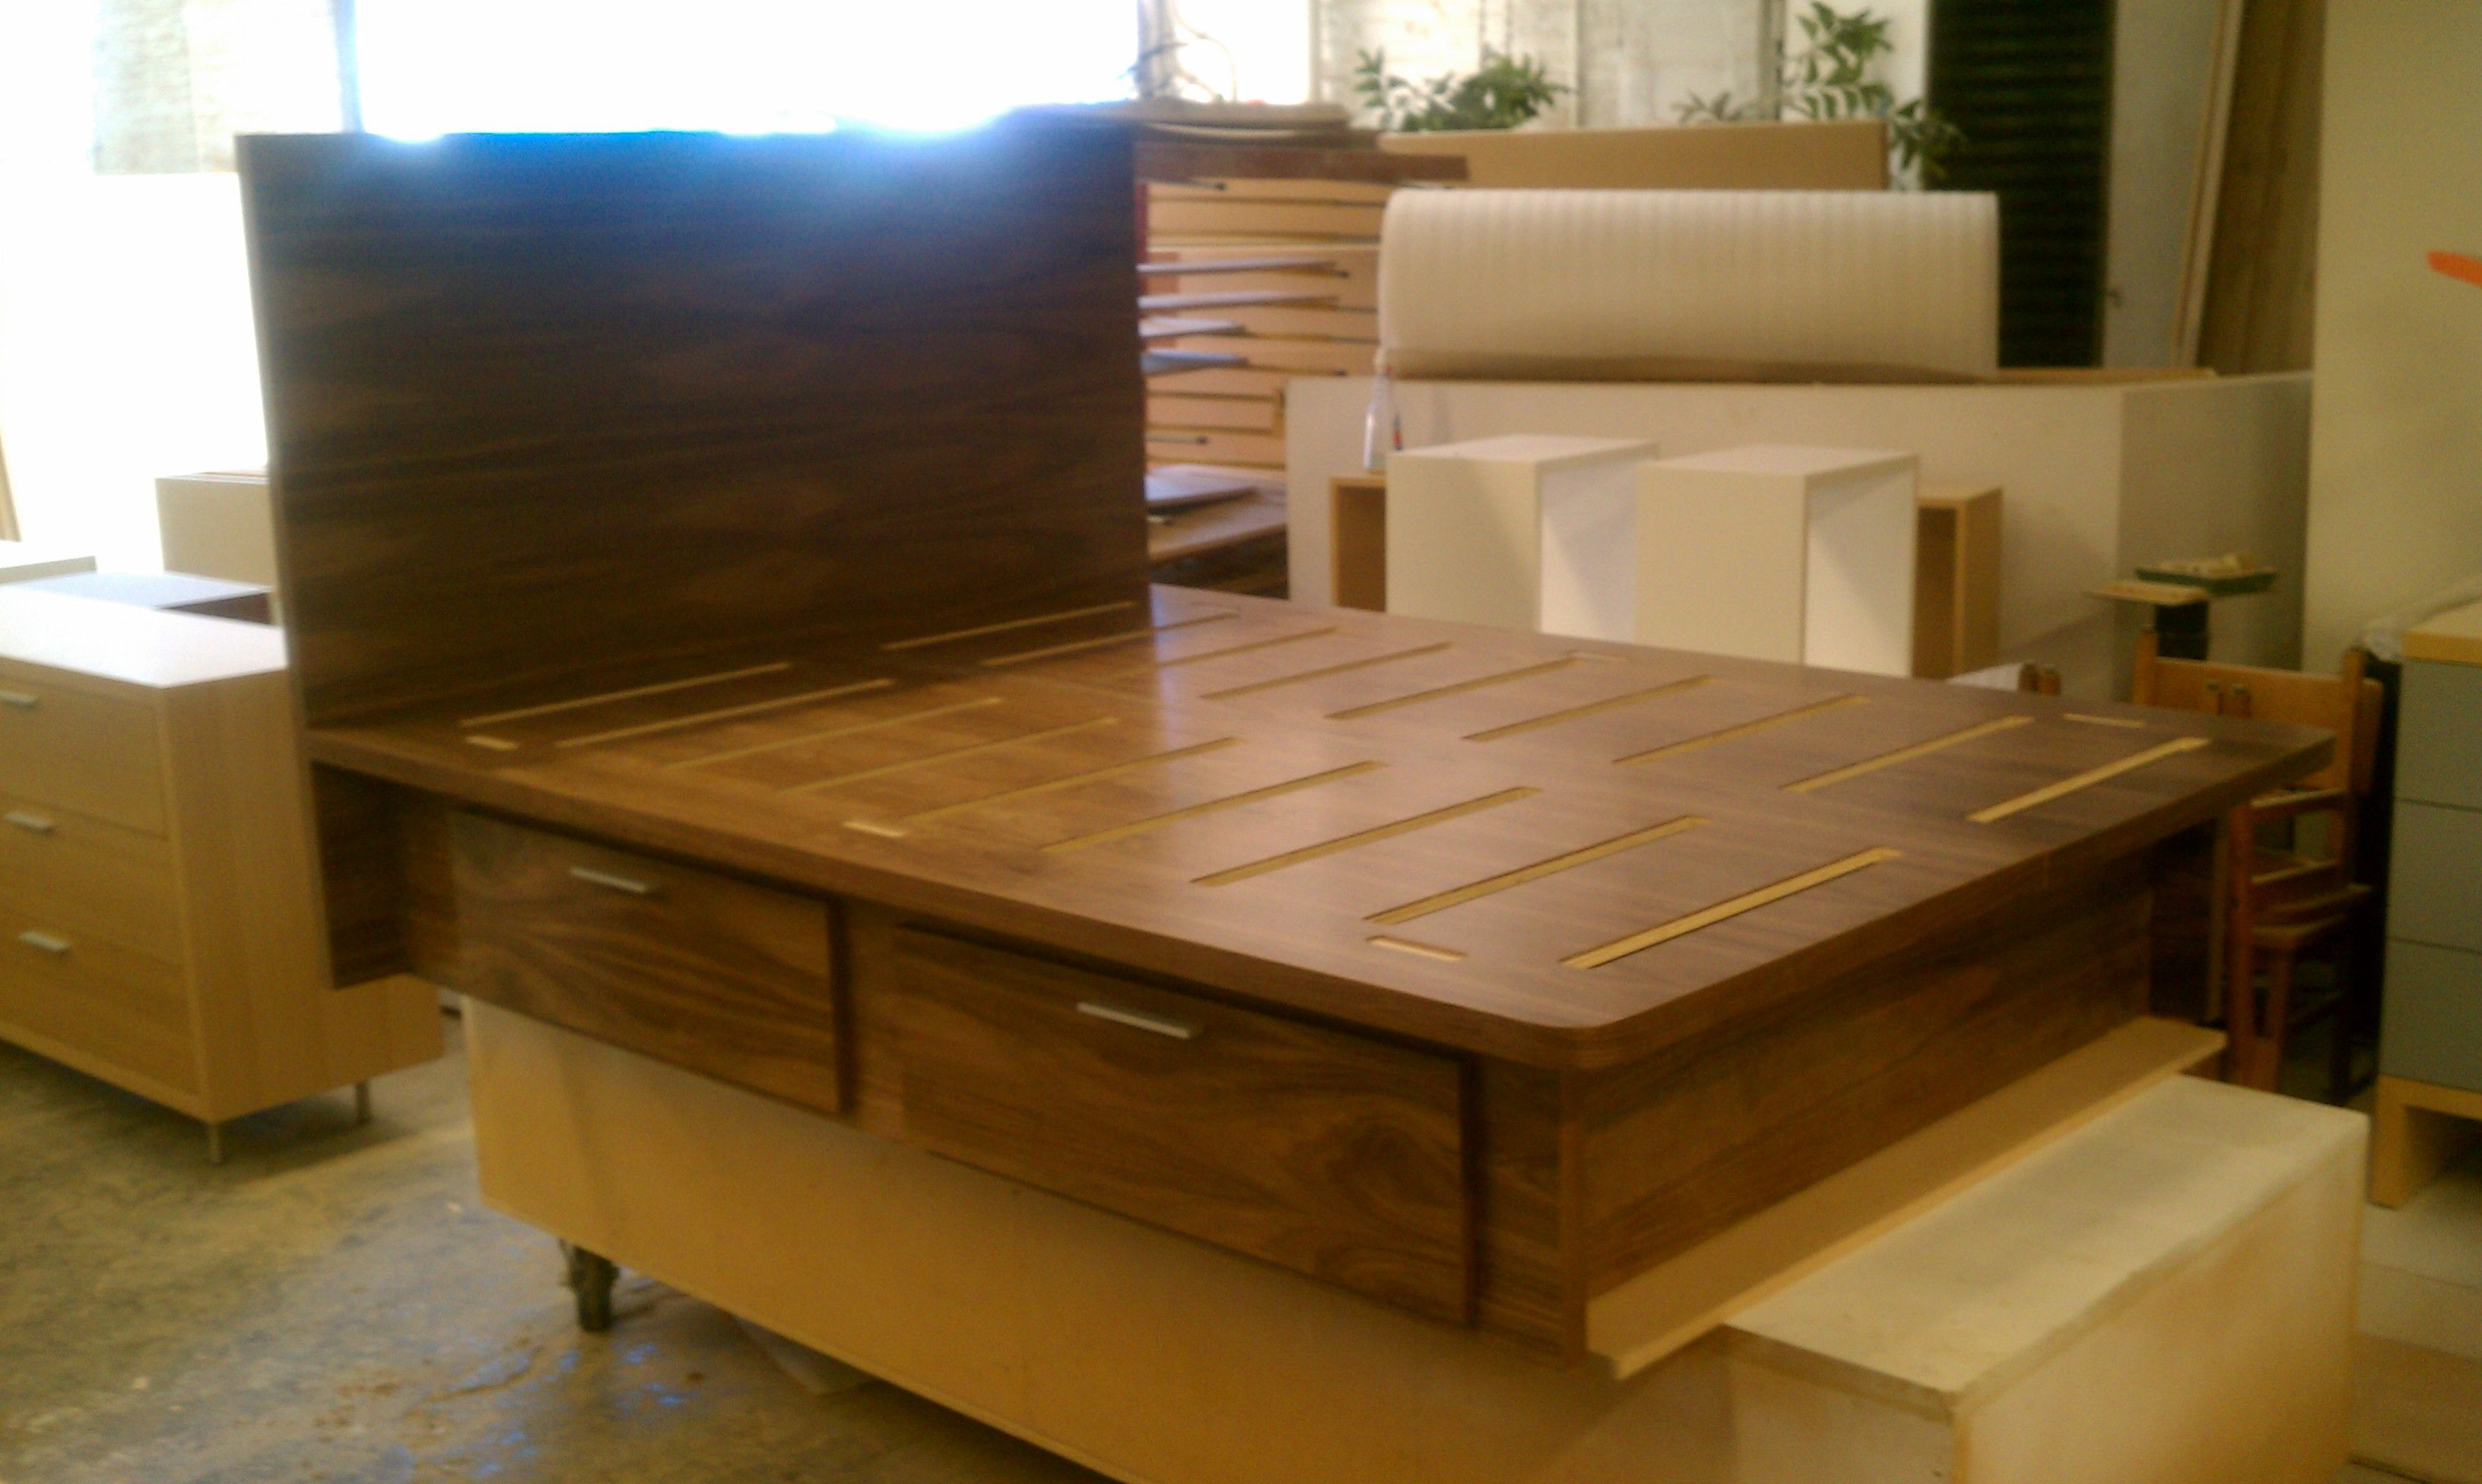 Platform bed, queen size, walnut veneer with 4 standard